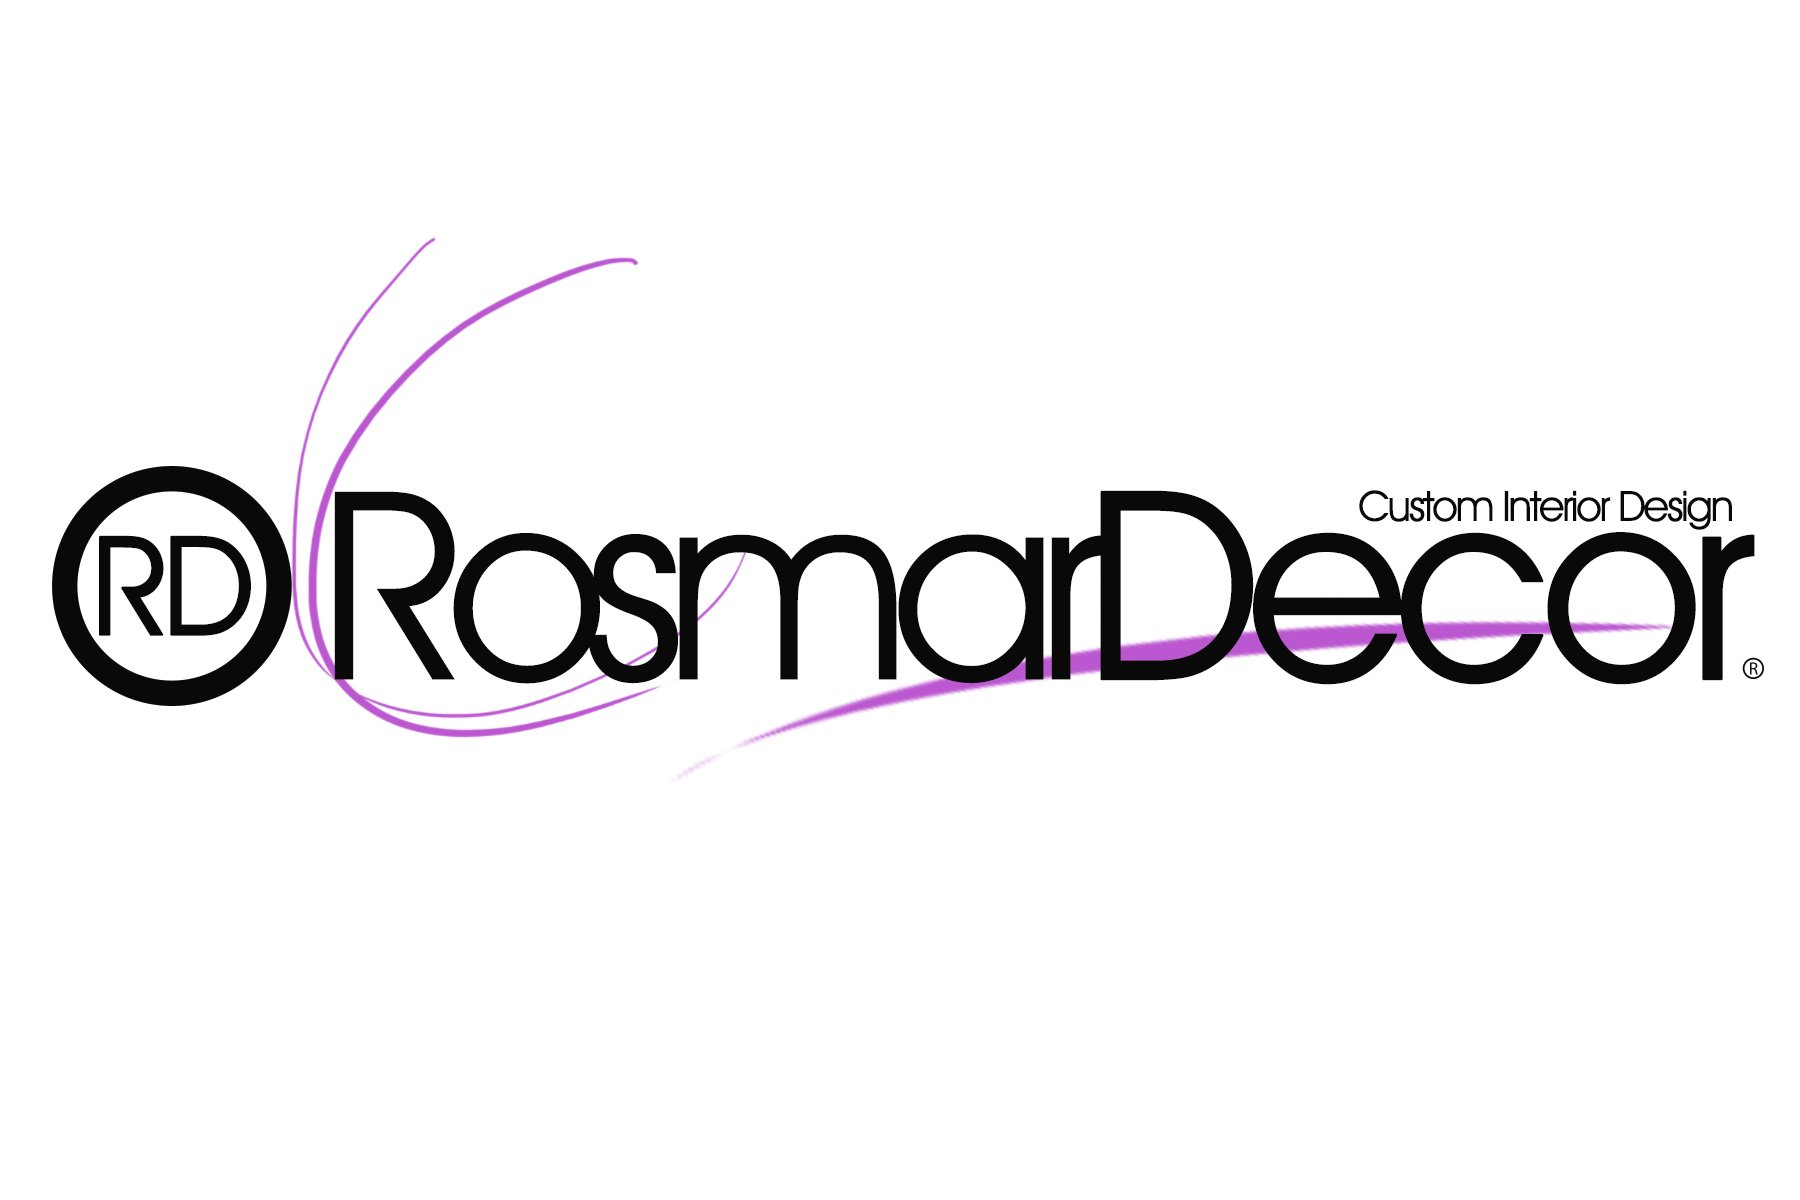 Rosmardecor – Cortinas y Estores